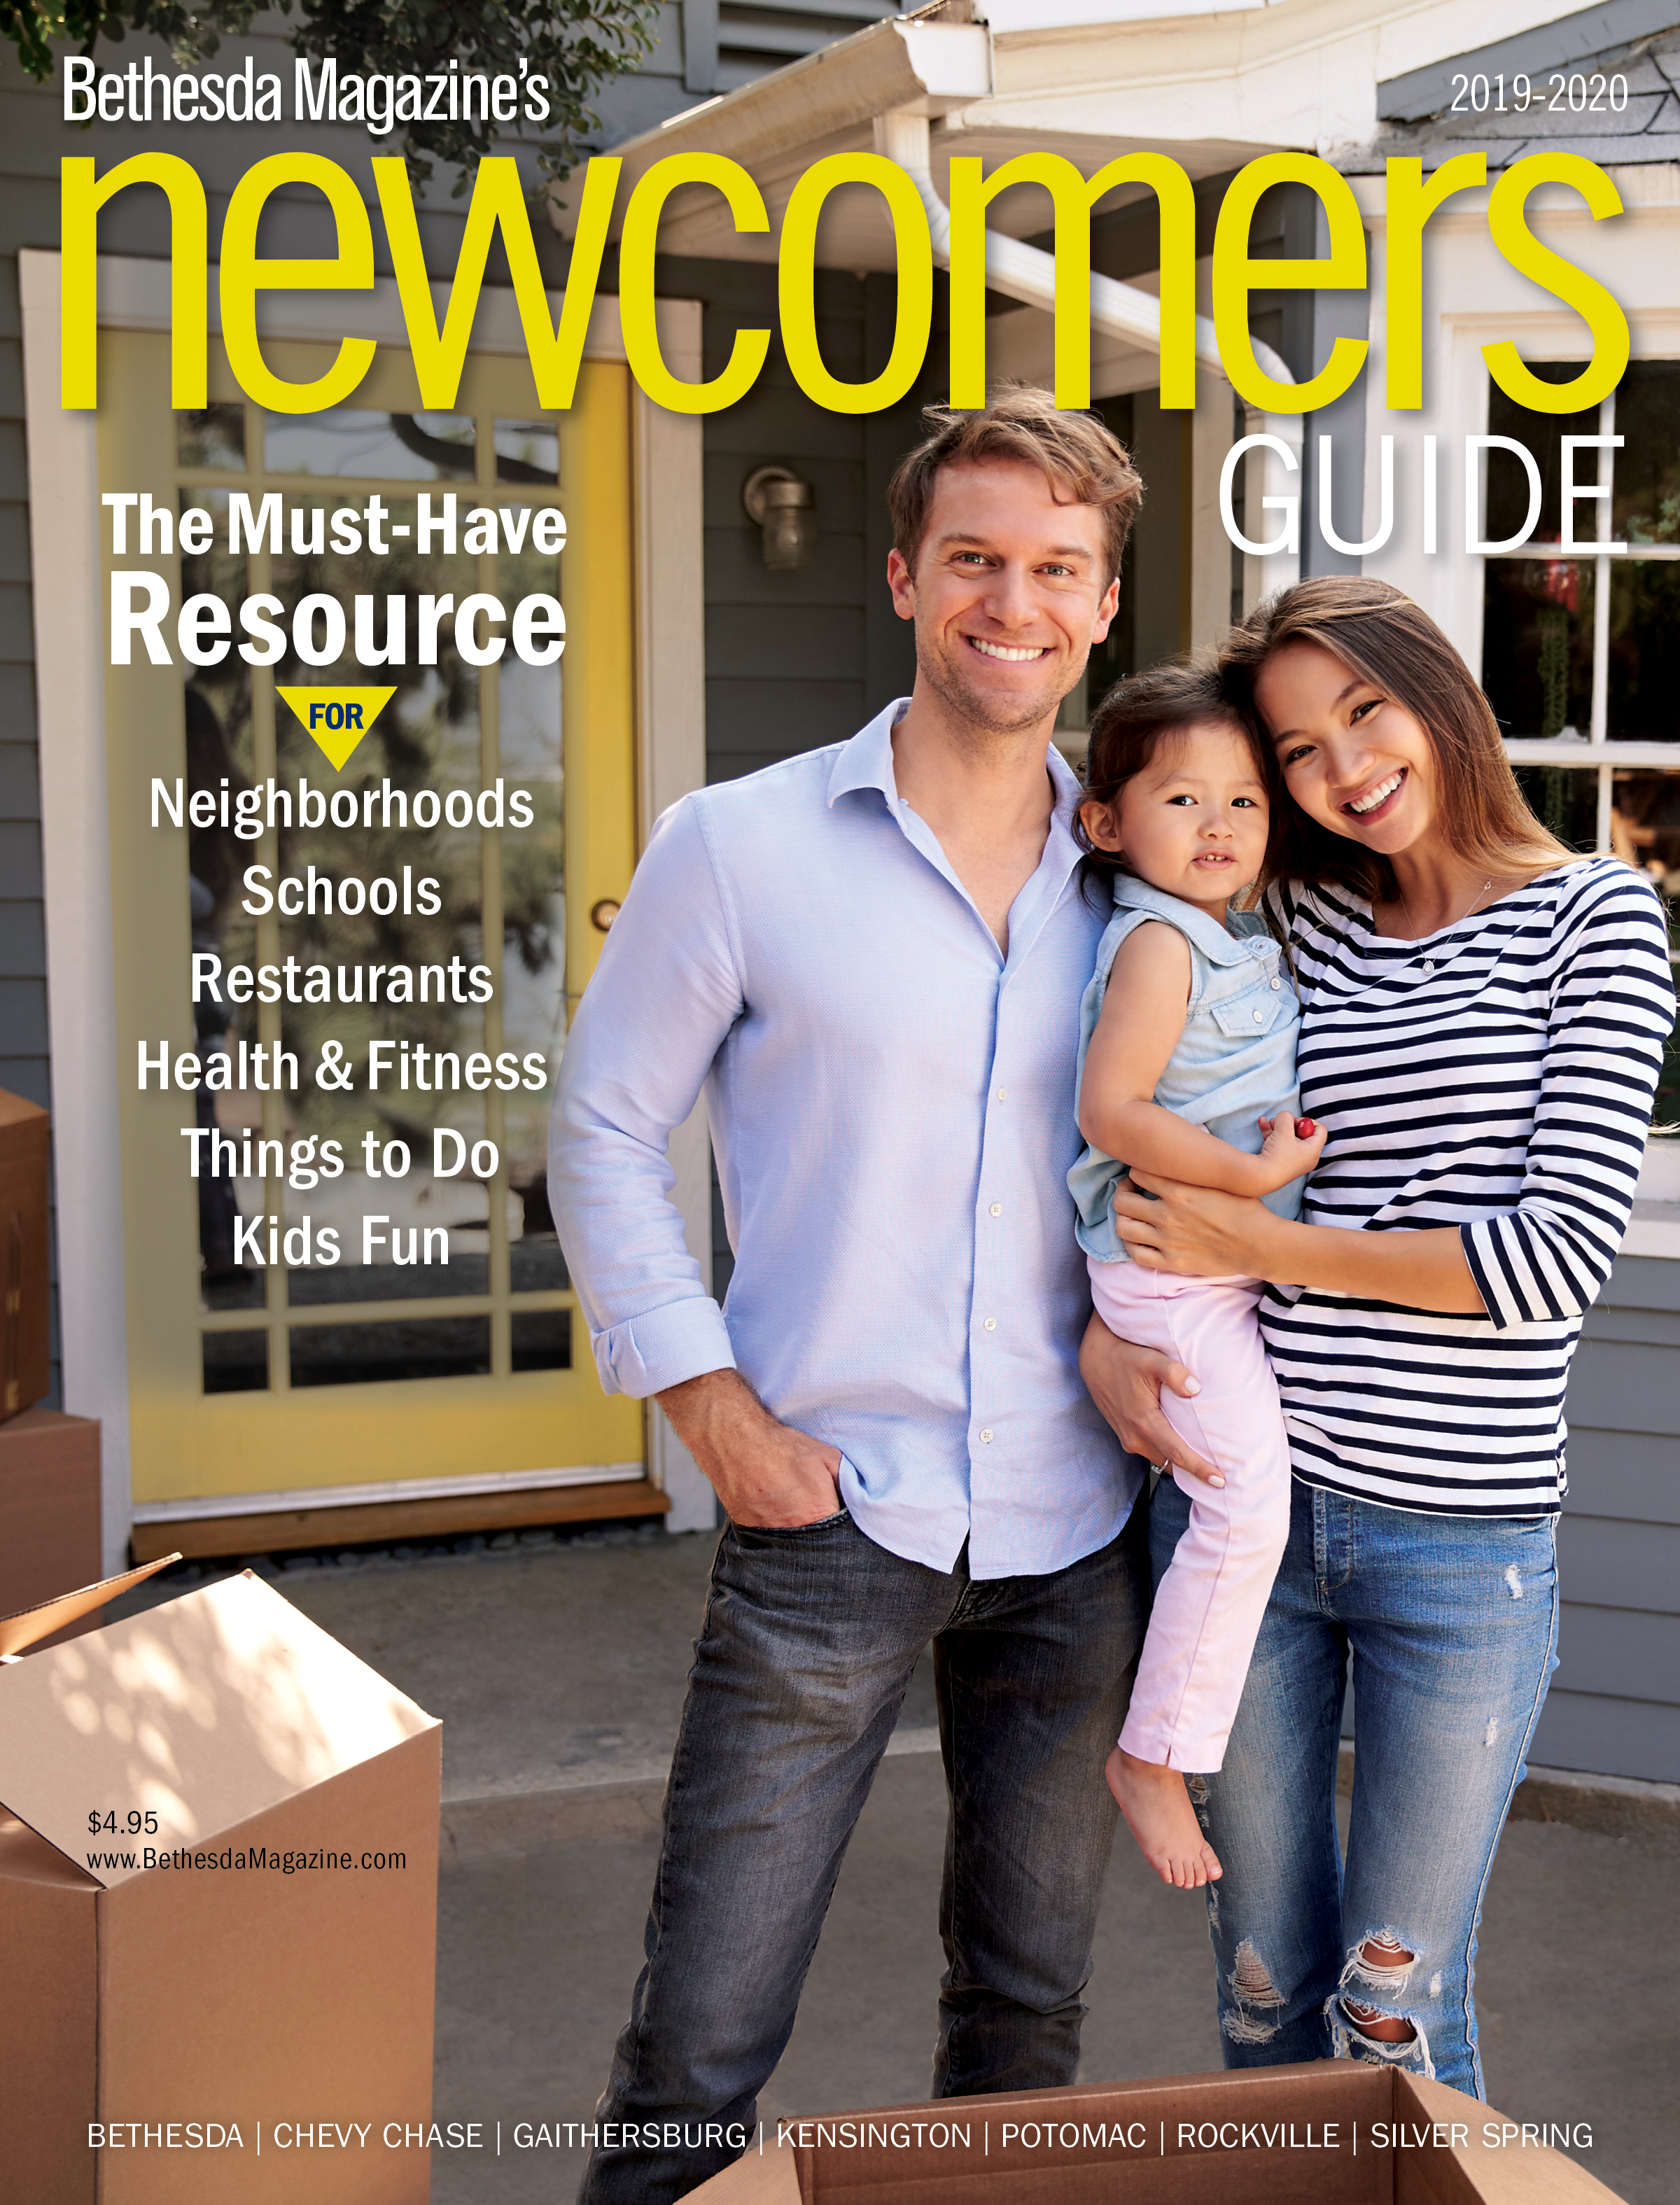 NEWCOMERS-cover_2019-2020